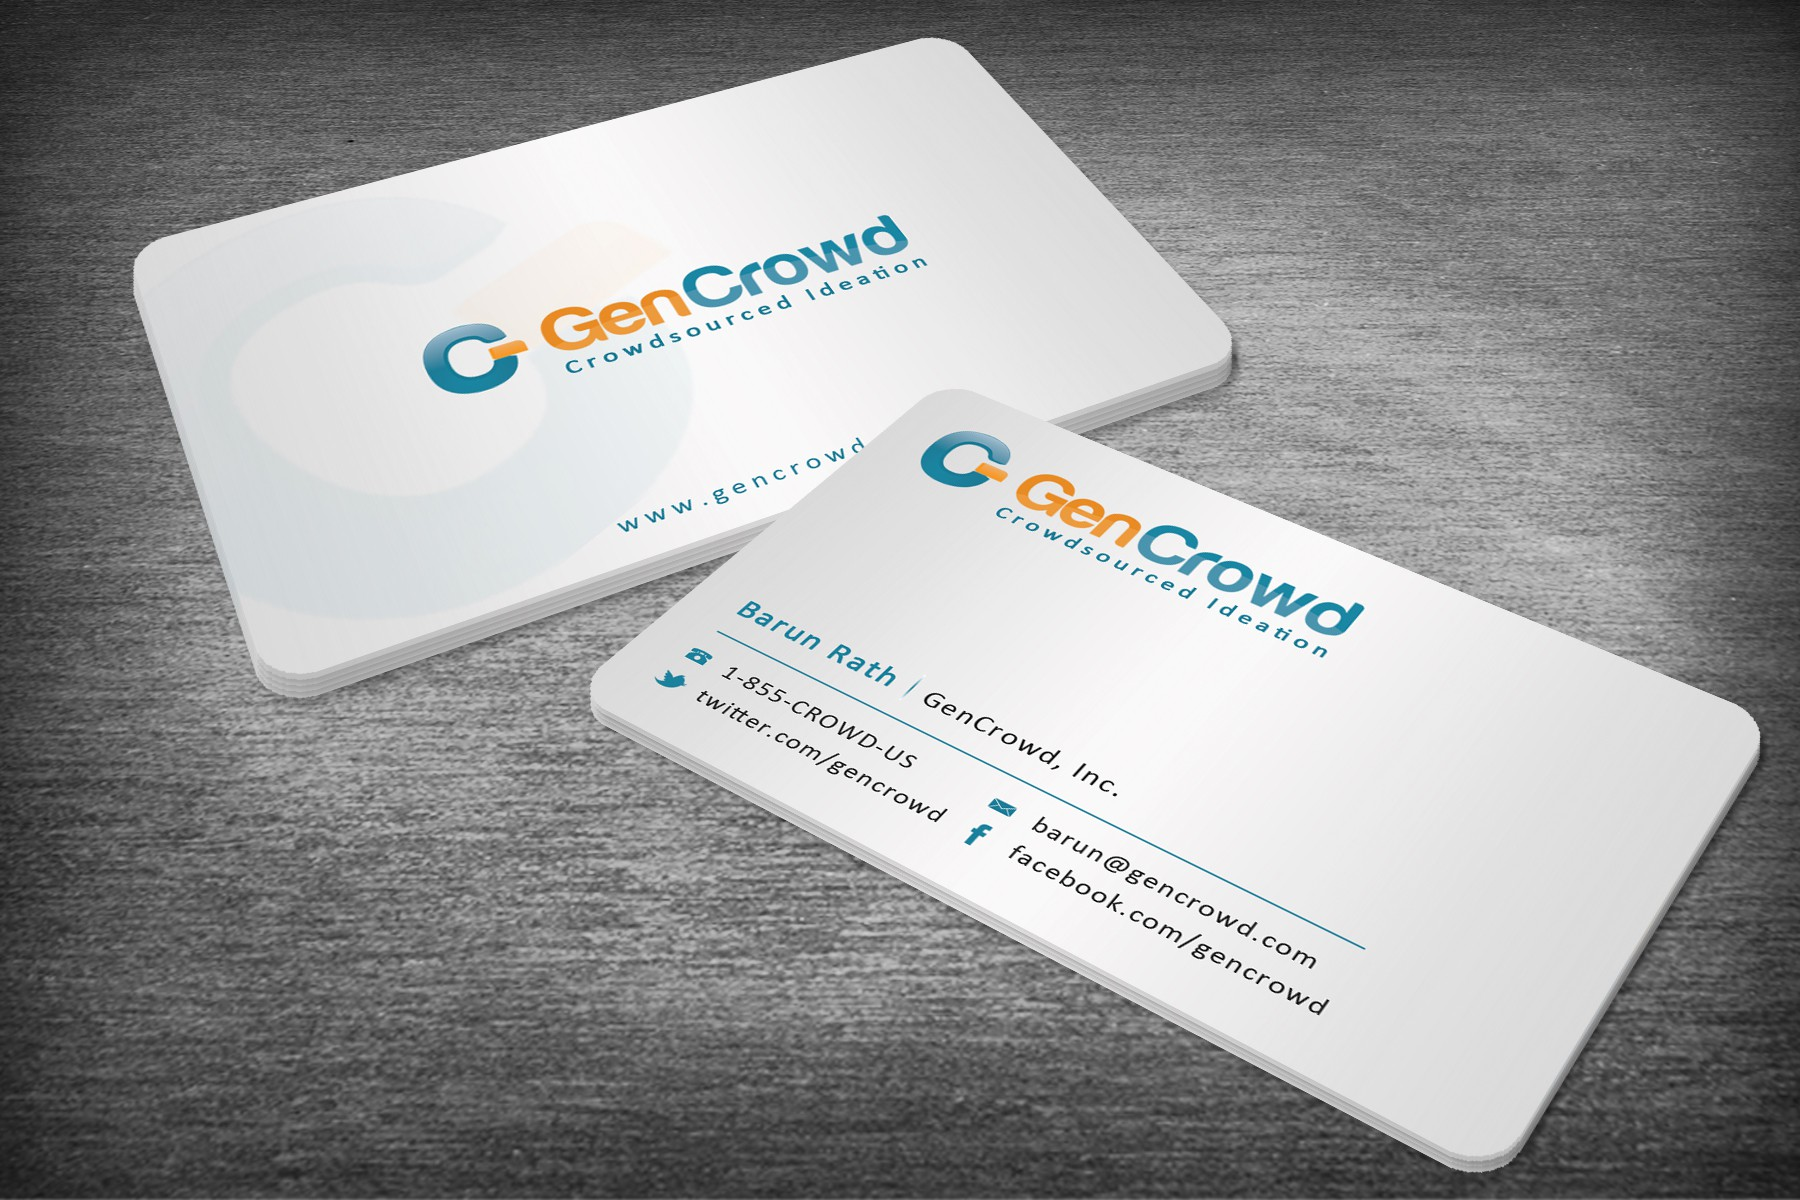 Business Card Design for GenCrowd - Guaranteed Contest